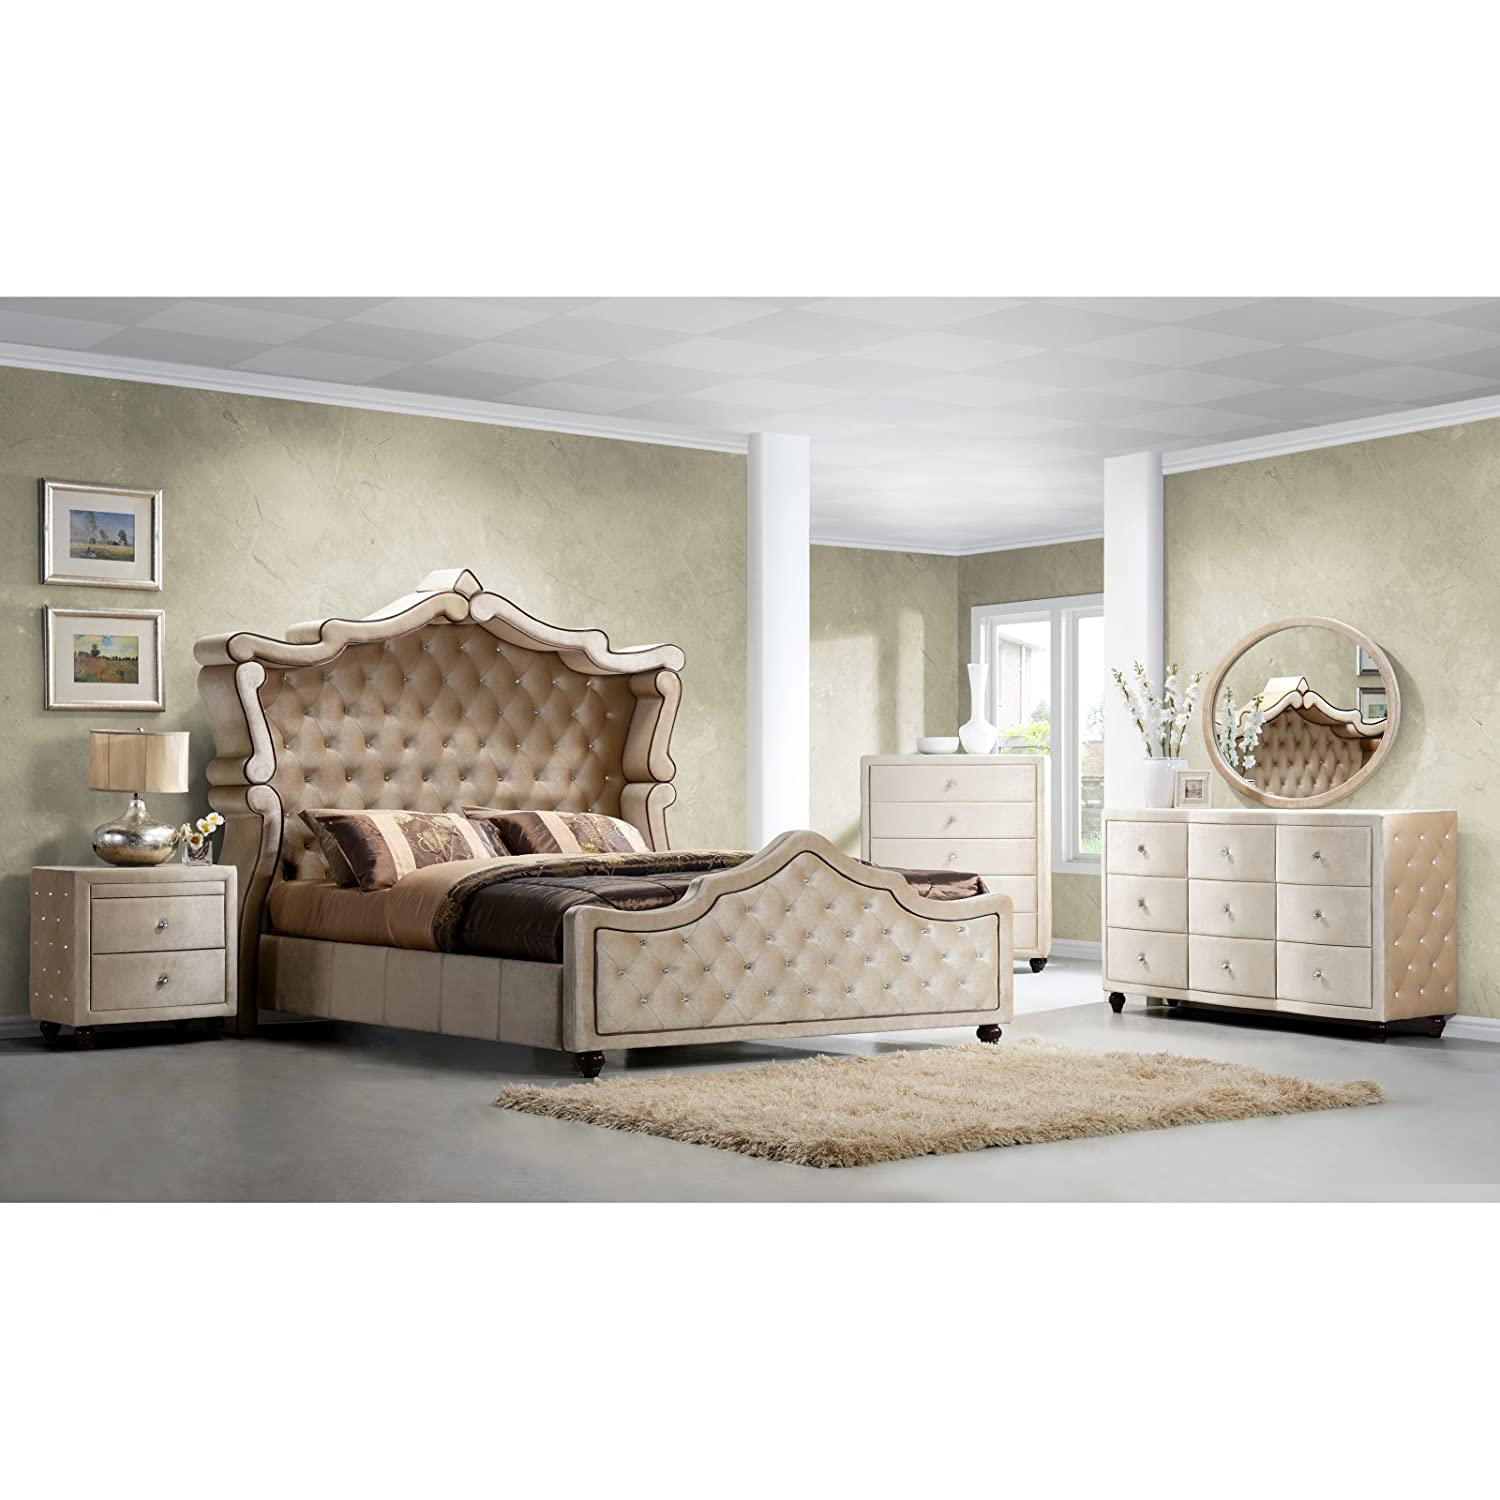 Amazon.com: Meridian Furniture Diamond Canopy Velvet Bed, Queen: Kitchen U0026  Dining